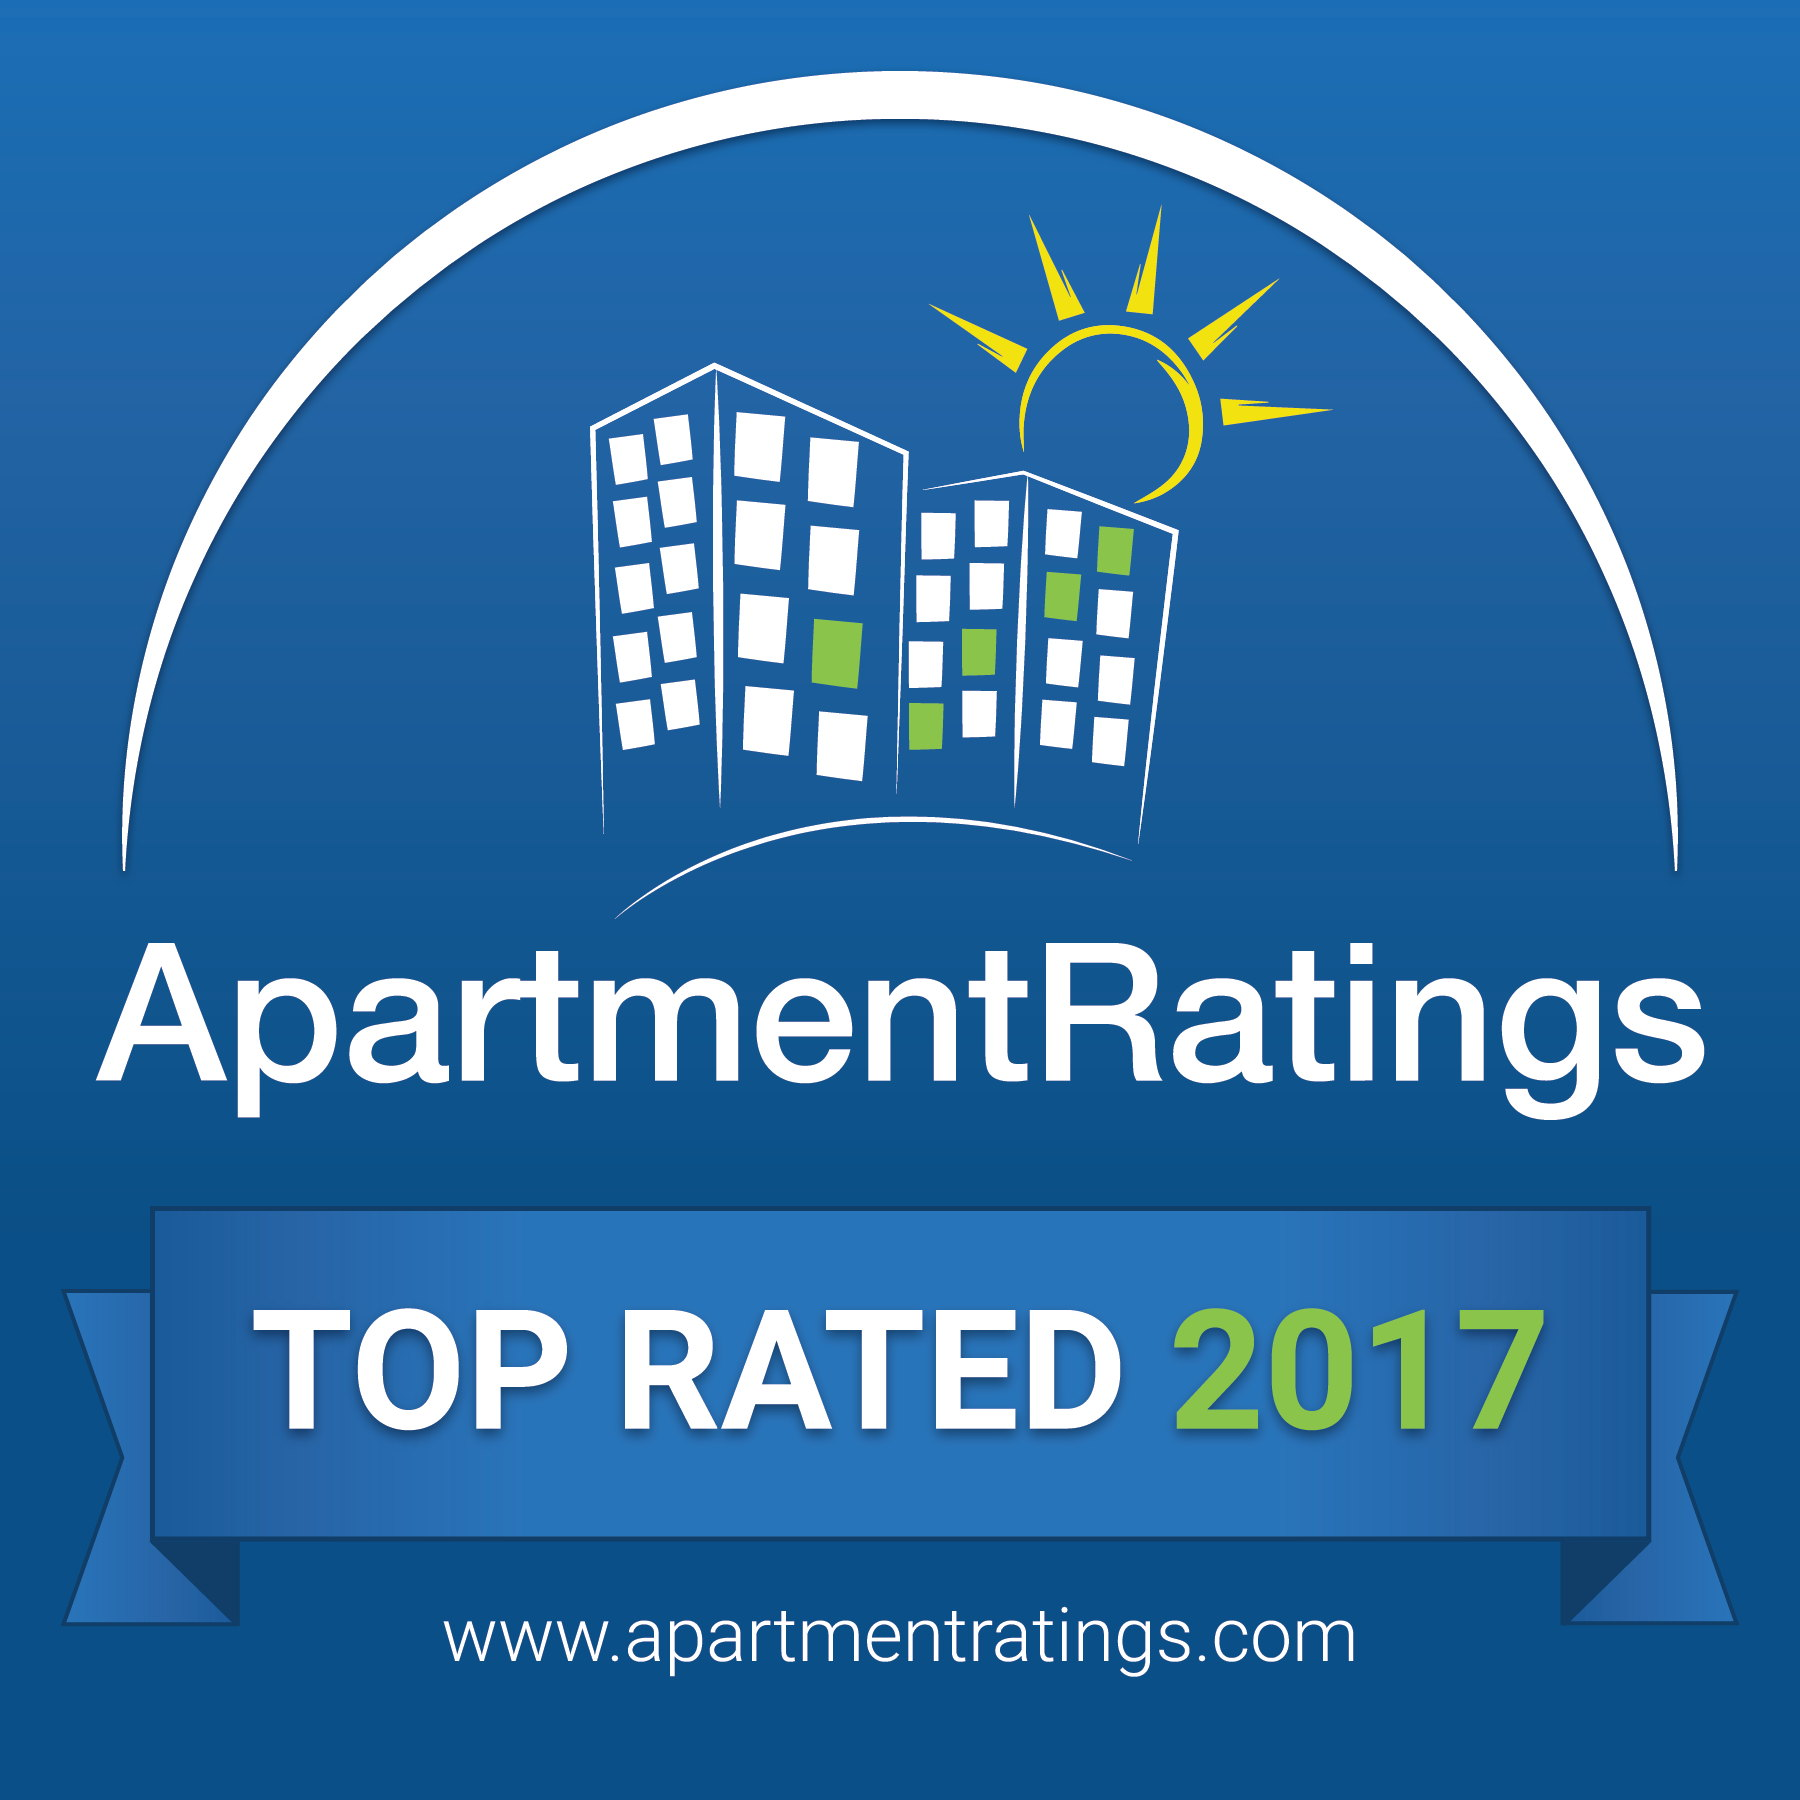 Apartment Ratings 2017 Award Logo.png